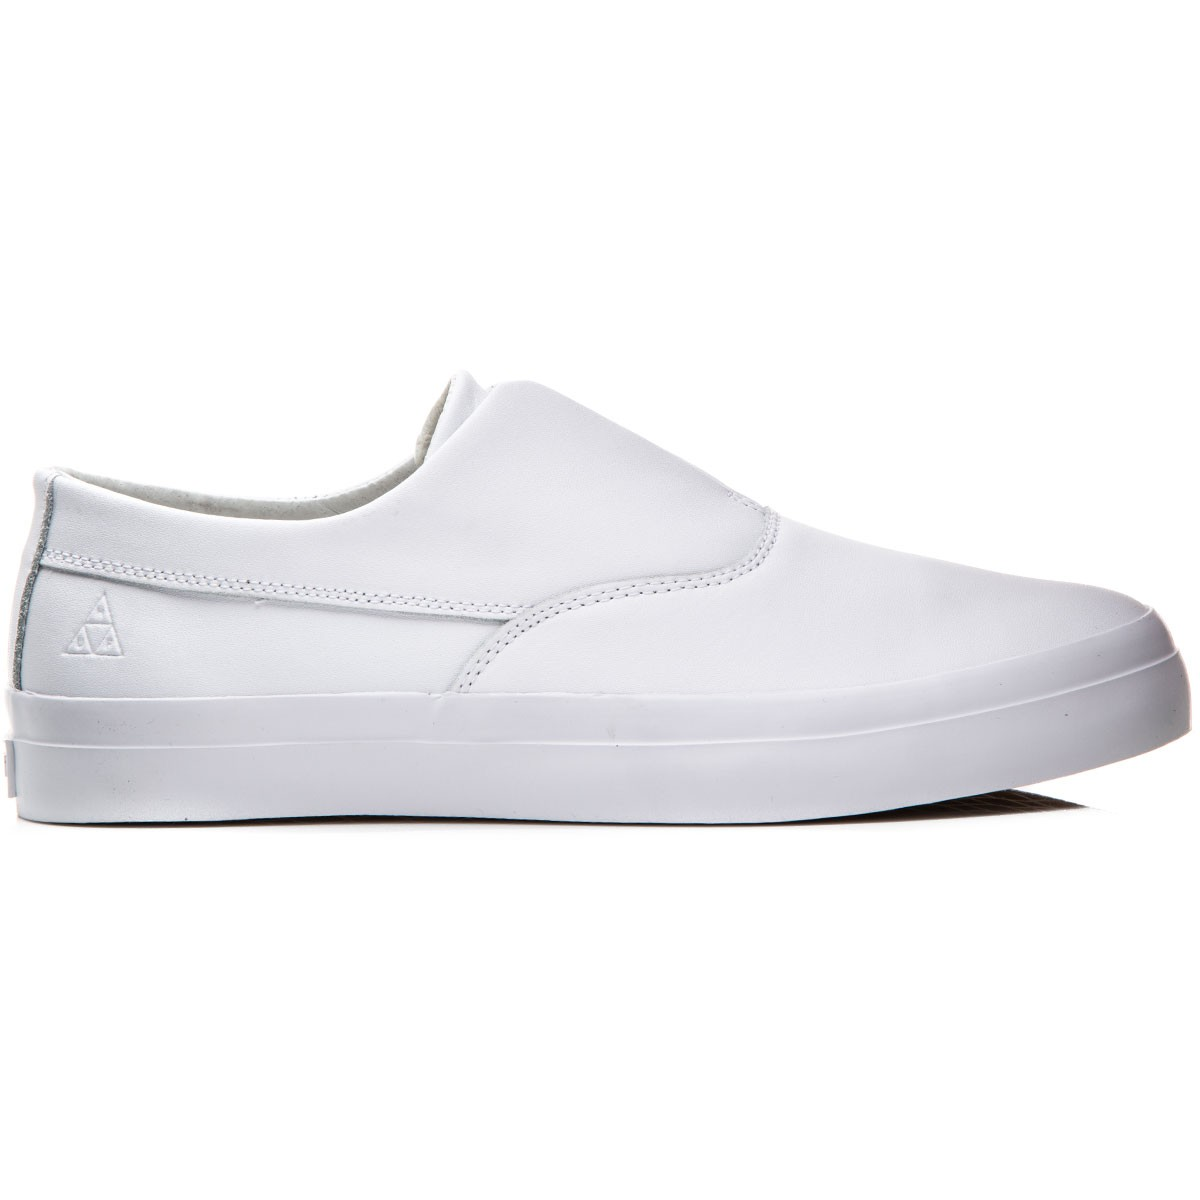 935096b2b6 HUF Dylan Slip On Shoes - White - 8.0